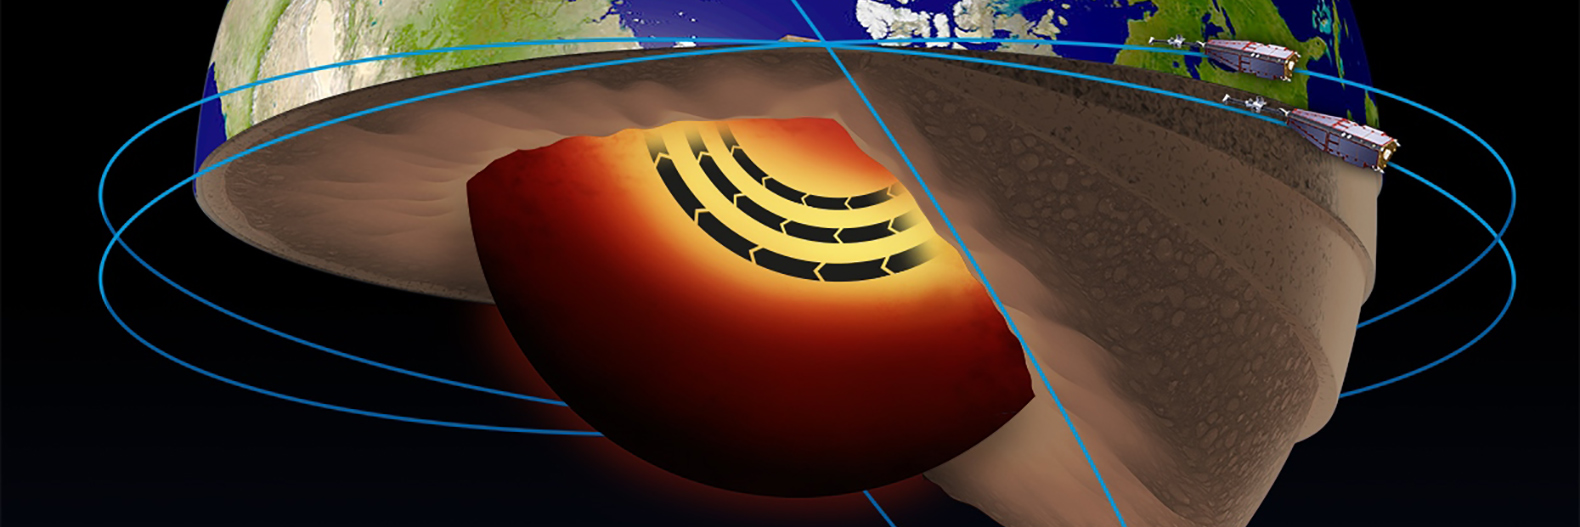 Molten jet stream found hurtling through Earth's core